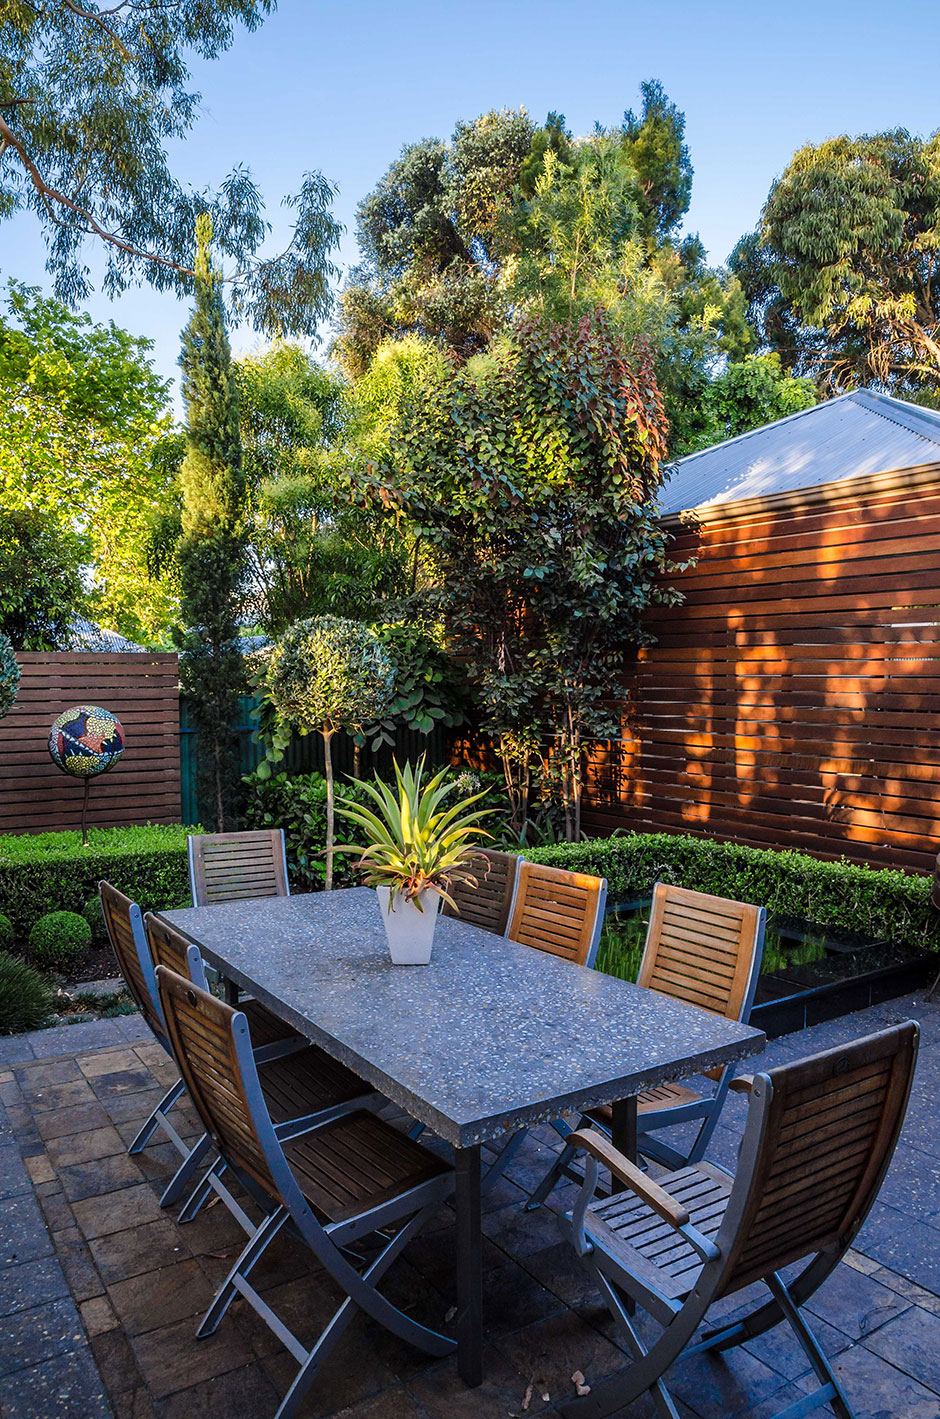 Outdoor Living Gallery Exterior Concepts Pty Ltd Landscaped Gardens